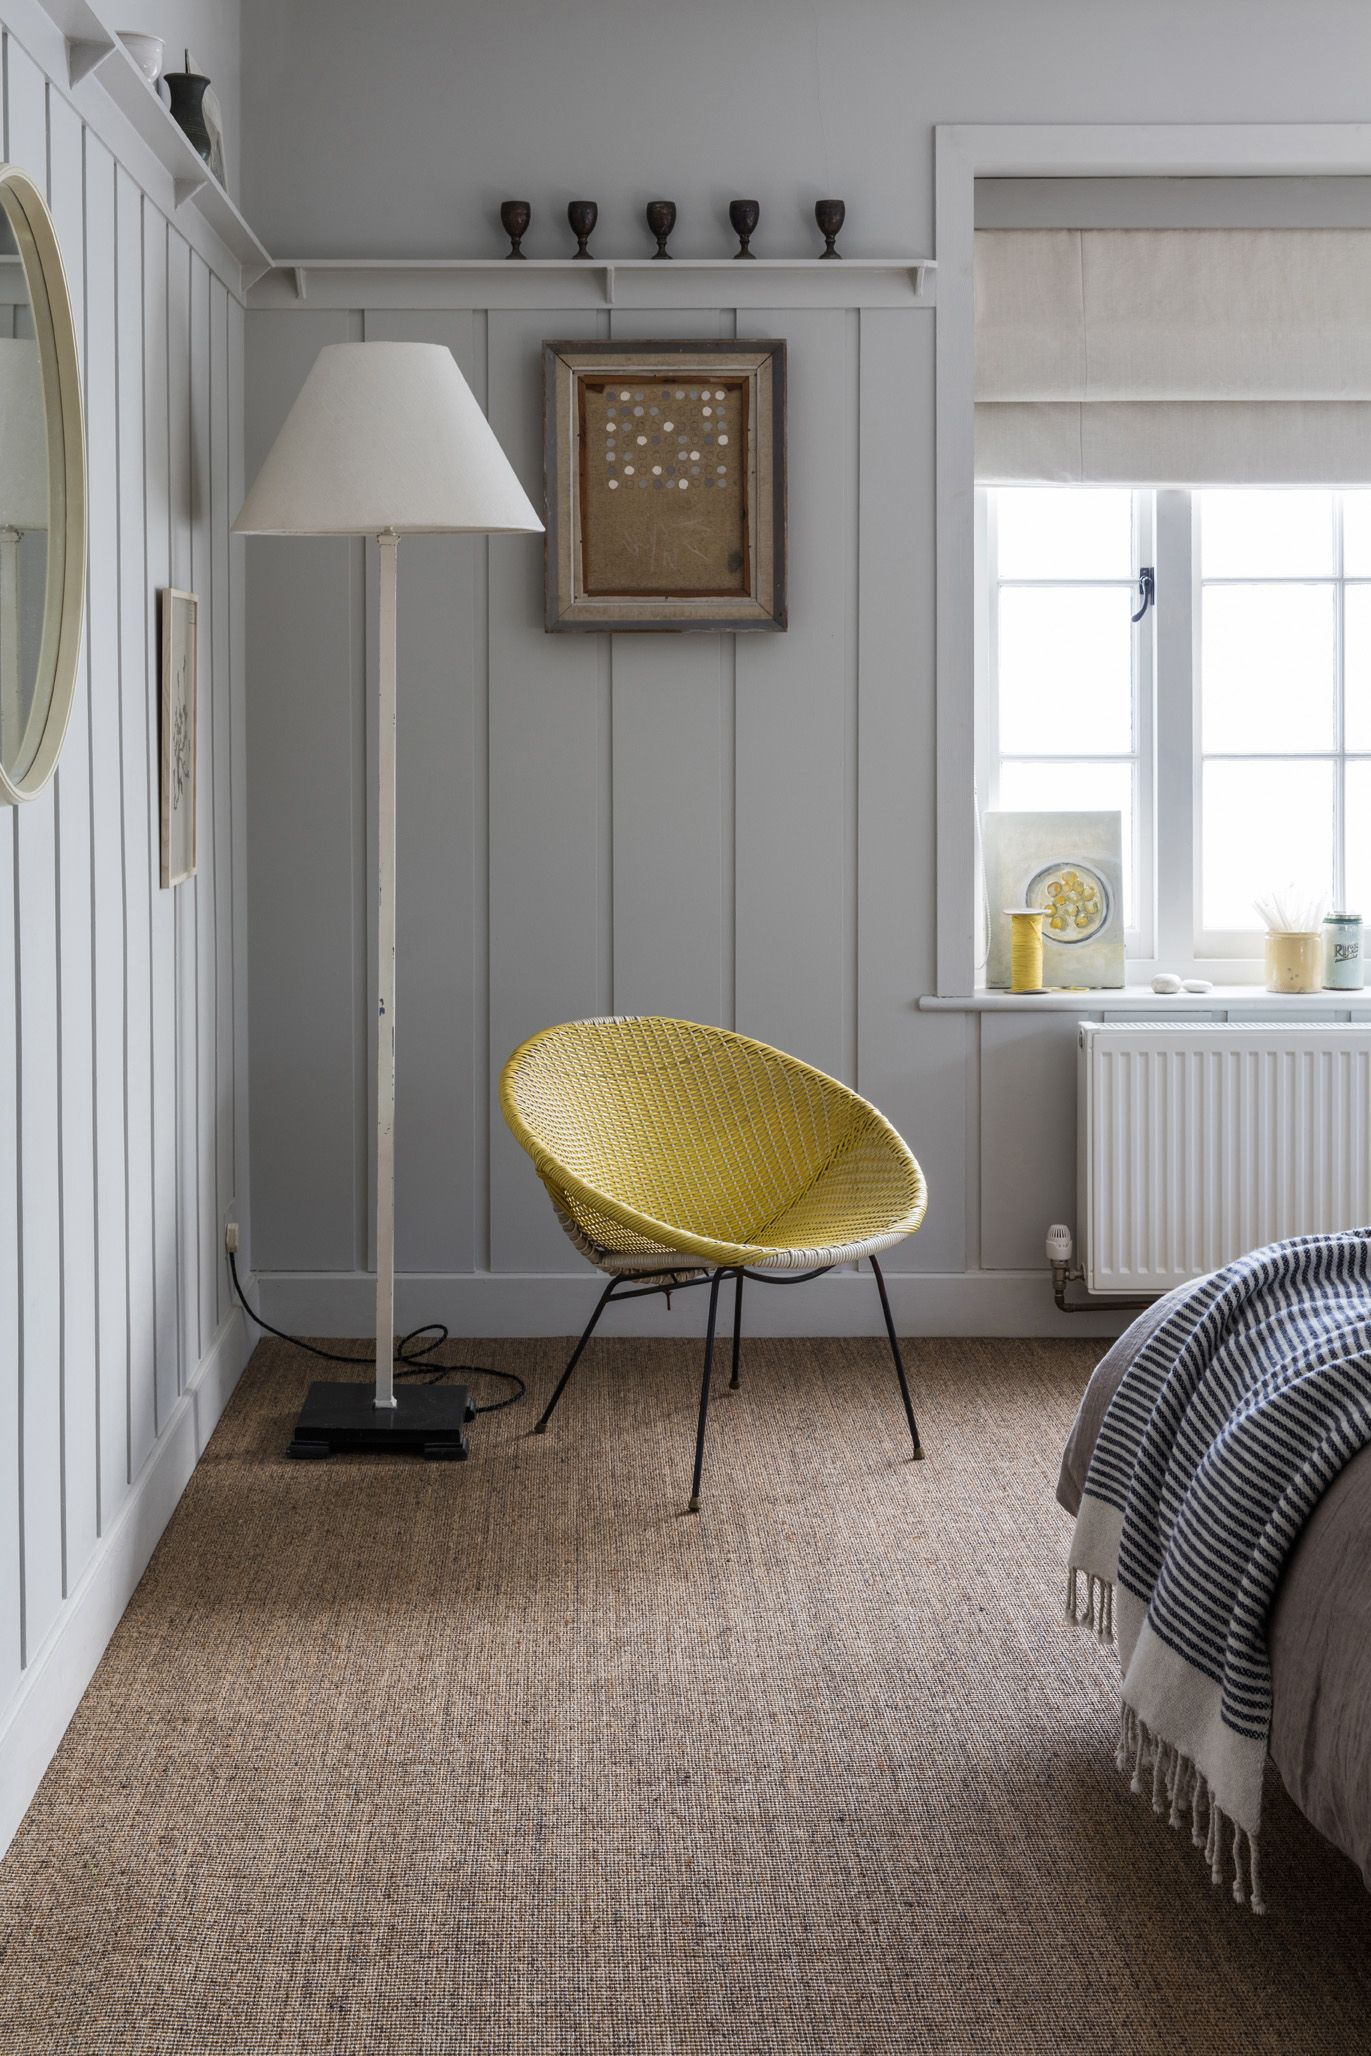 Natural Flooring Is The Perfect Addition To A Neutral Room This Sisal Carpet Is 100 Natural And Come Living Room Carpet Bedroom Flooring Alternative Flooring